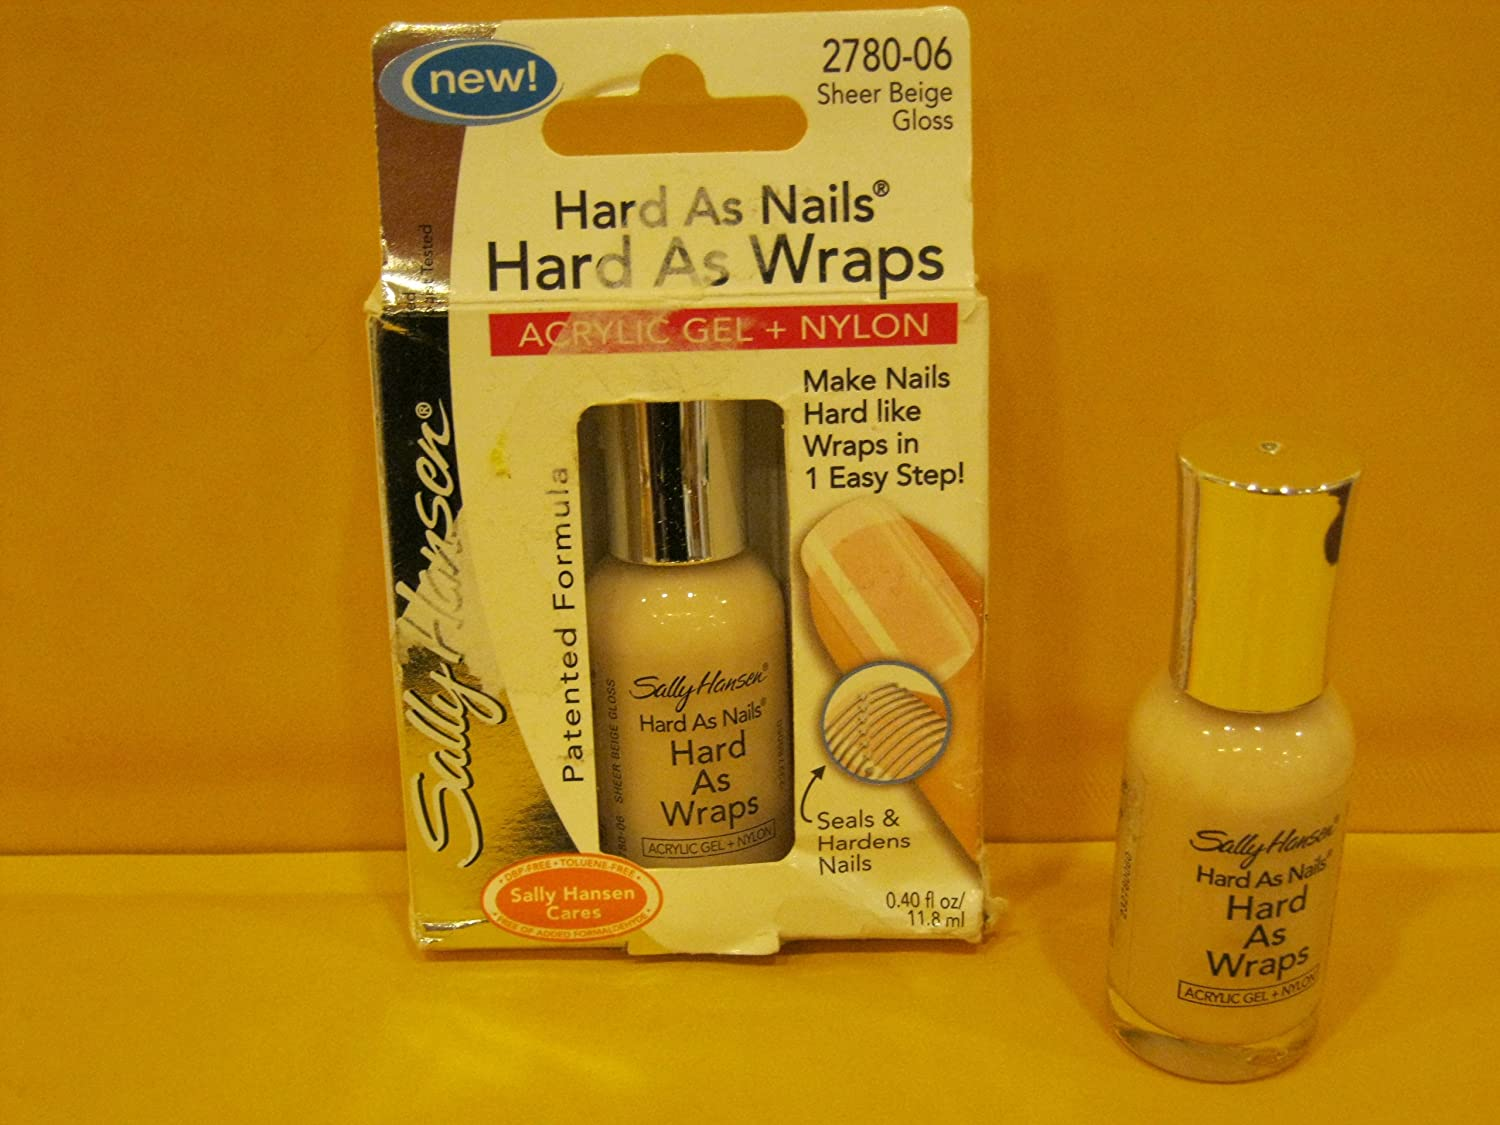 Sally Hansen Hard As Nails Hard As Wraps Nail Harderner - Sheer Beige Gloss - 0.4 oz